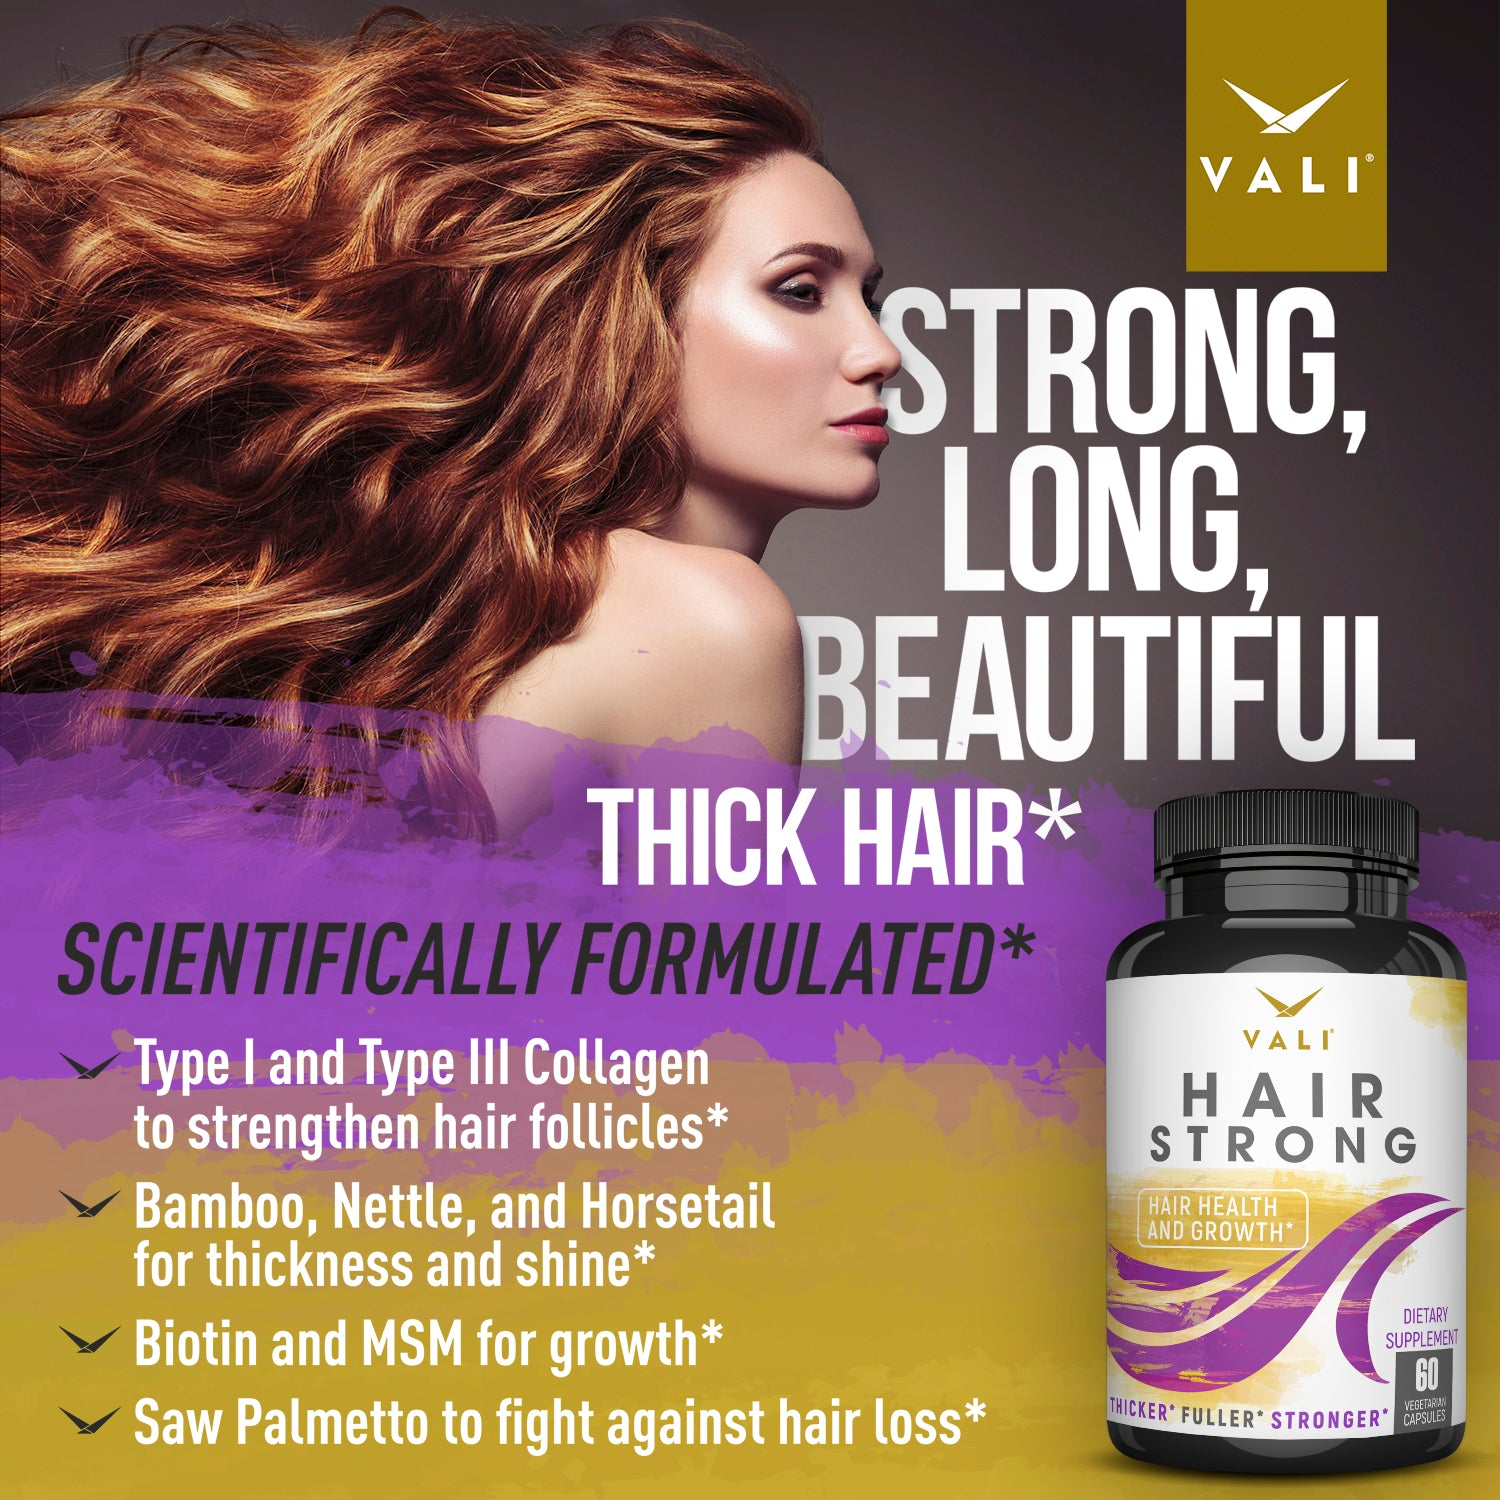 Vali Hair Strong Hair Health And Growth Vitamins